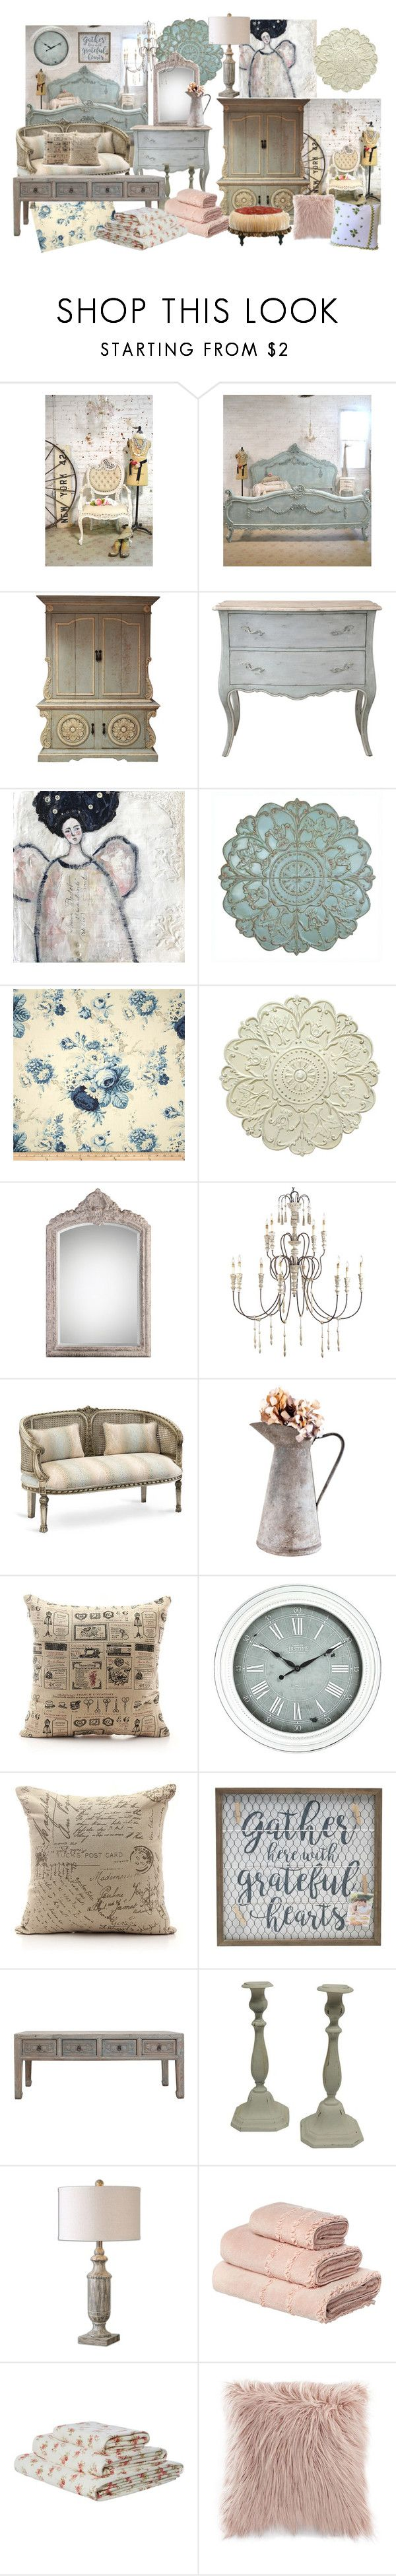 921 best Shabby Chic images on Pinterest | Vintage decor, Cottage ...